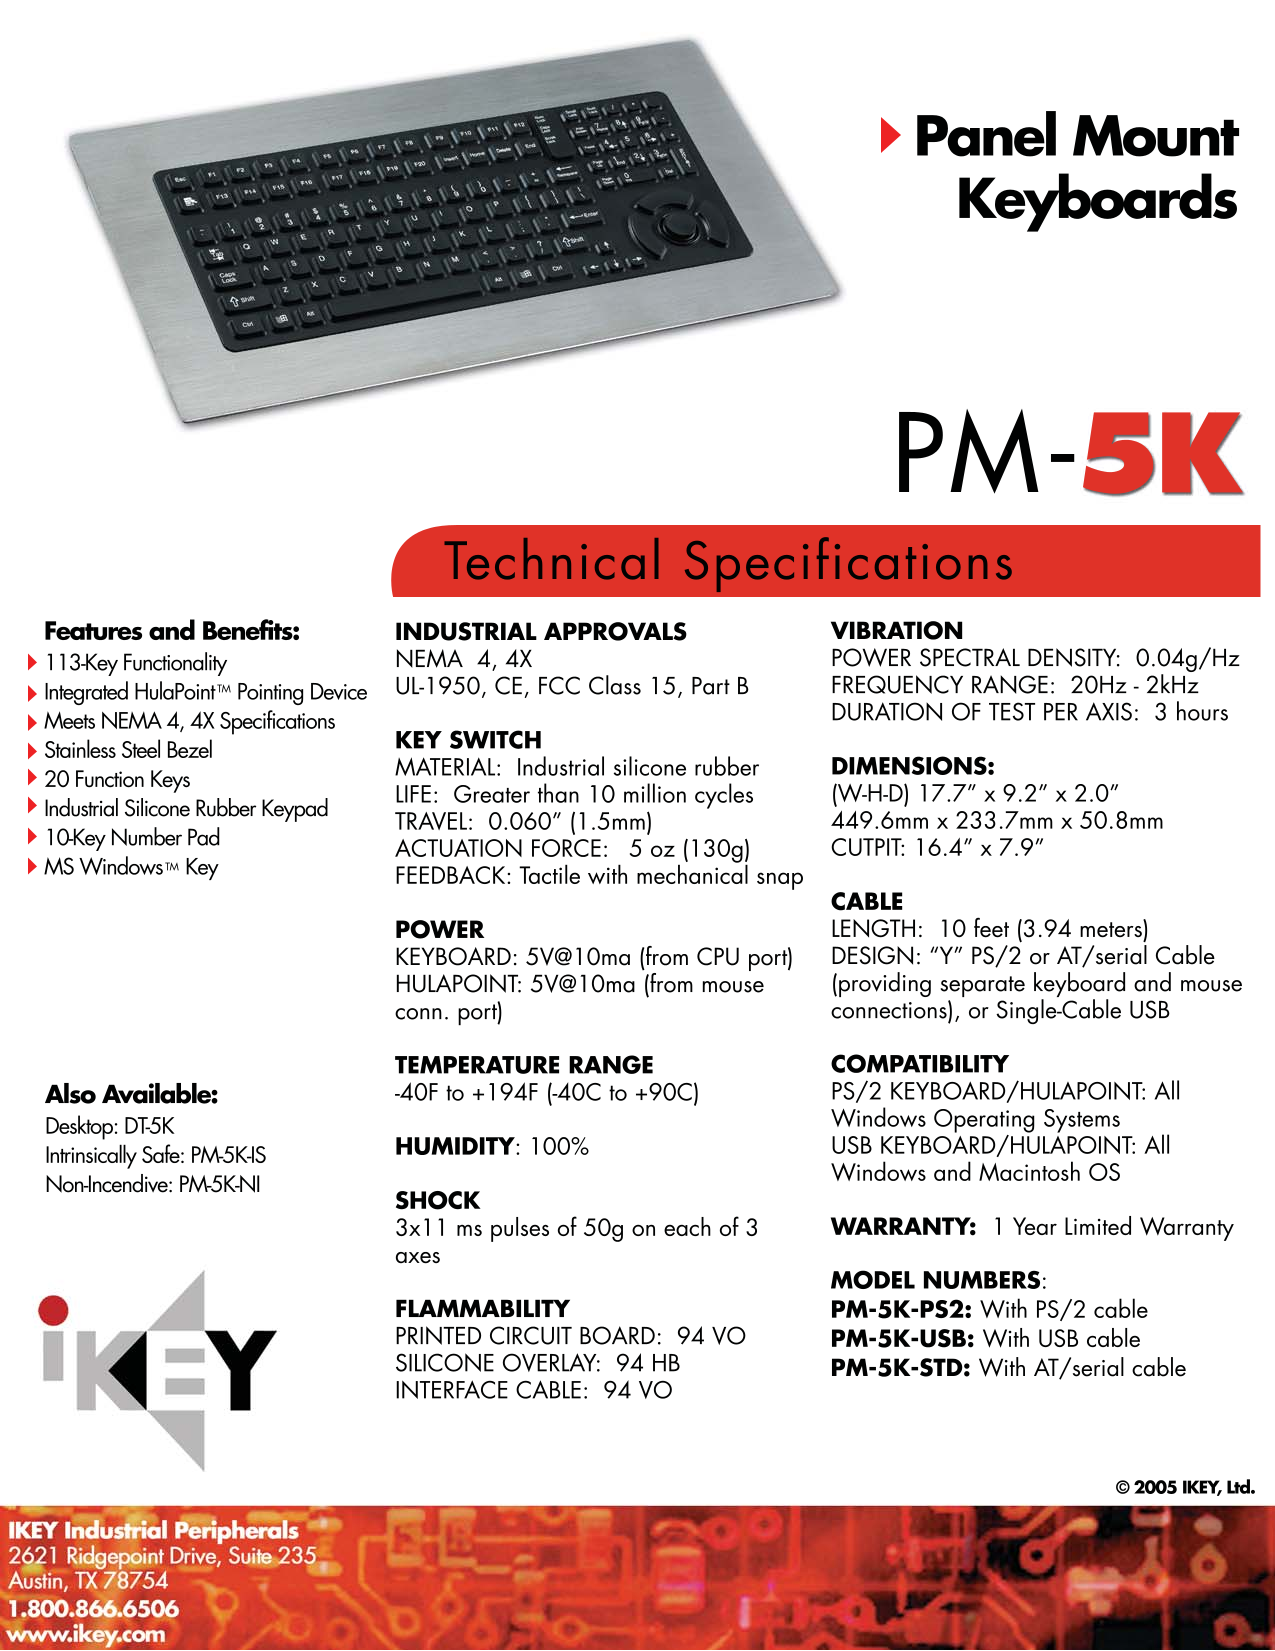 pdf for iKey Keyboard DT-5K-NI manual